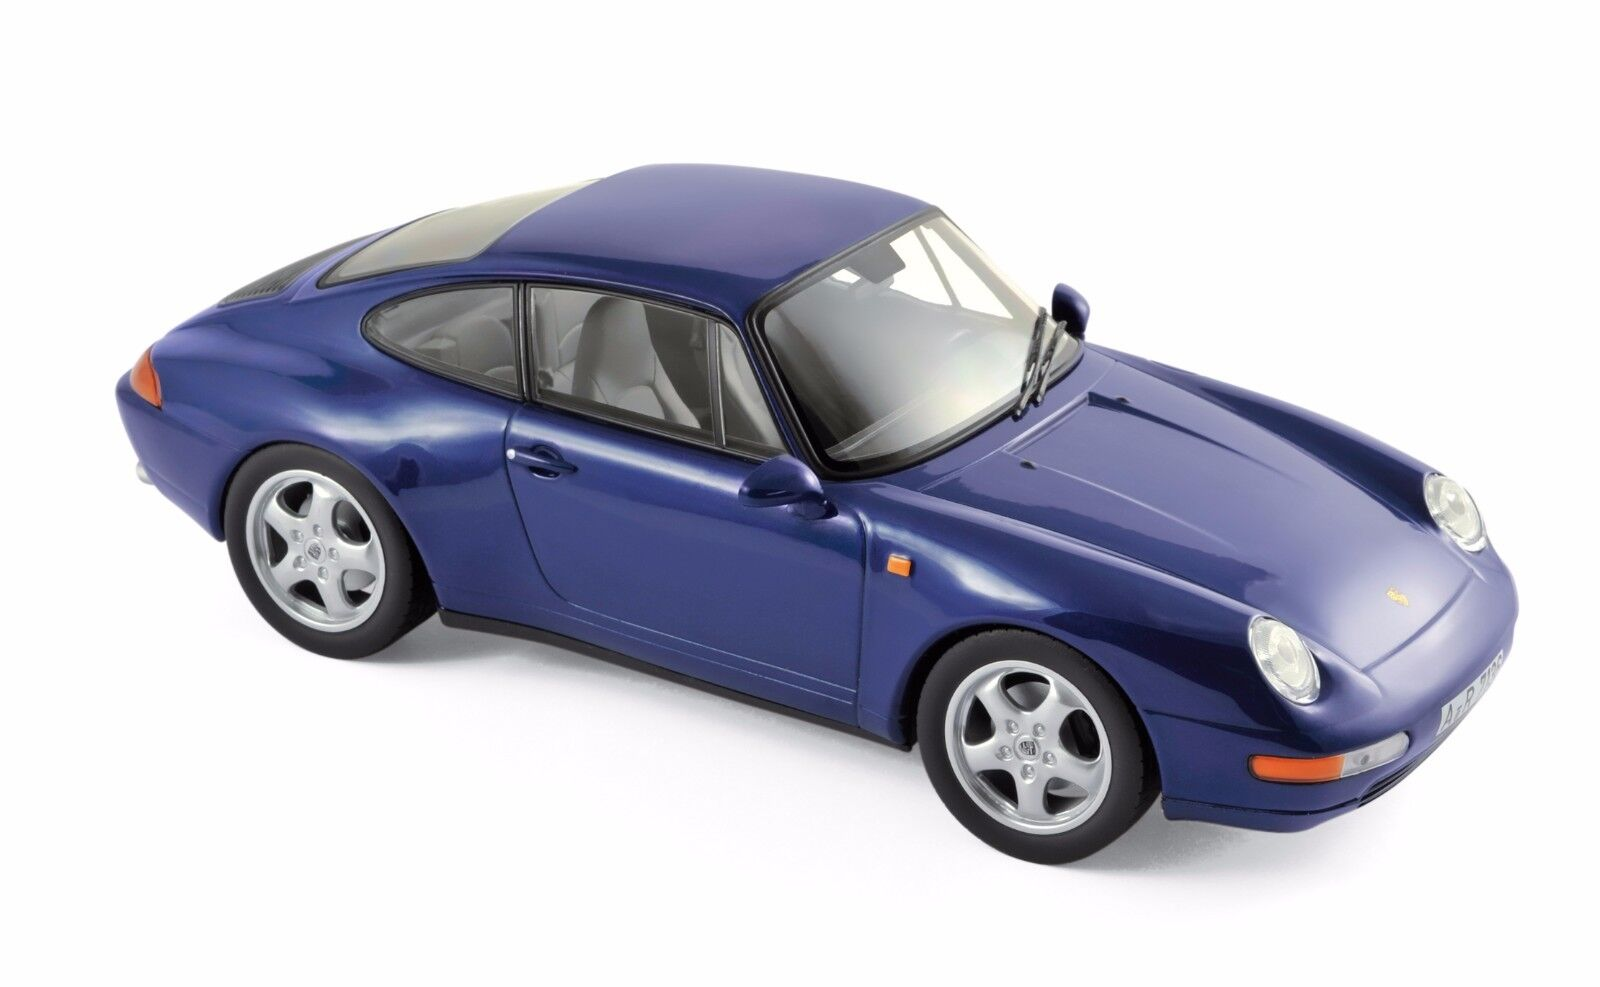 Norev Porsche 911 Carrera 1994 1 18 metallic bluee